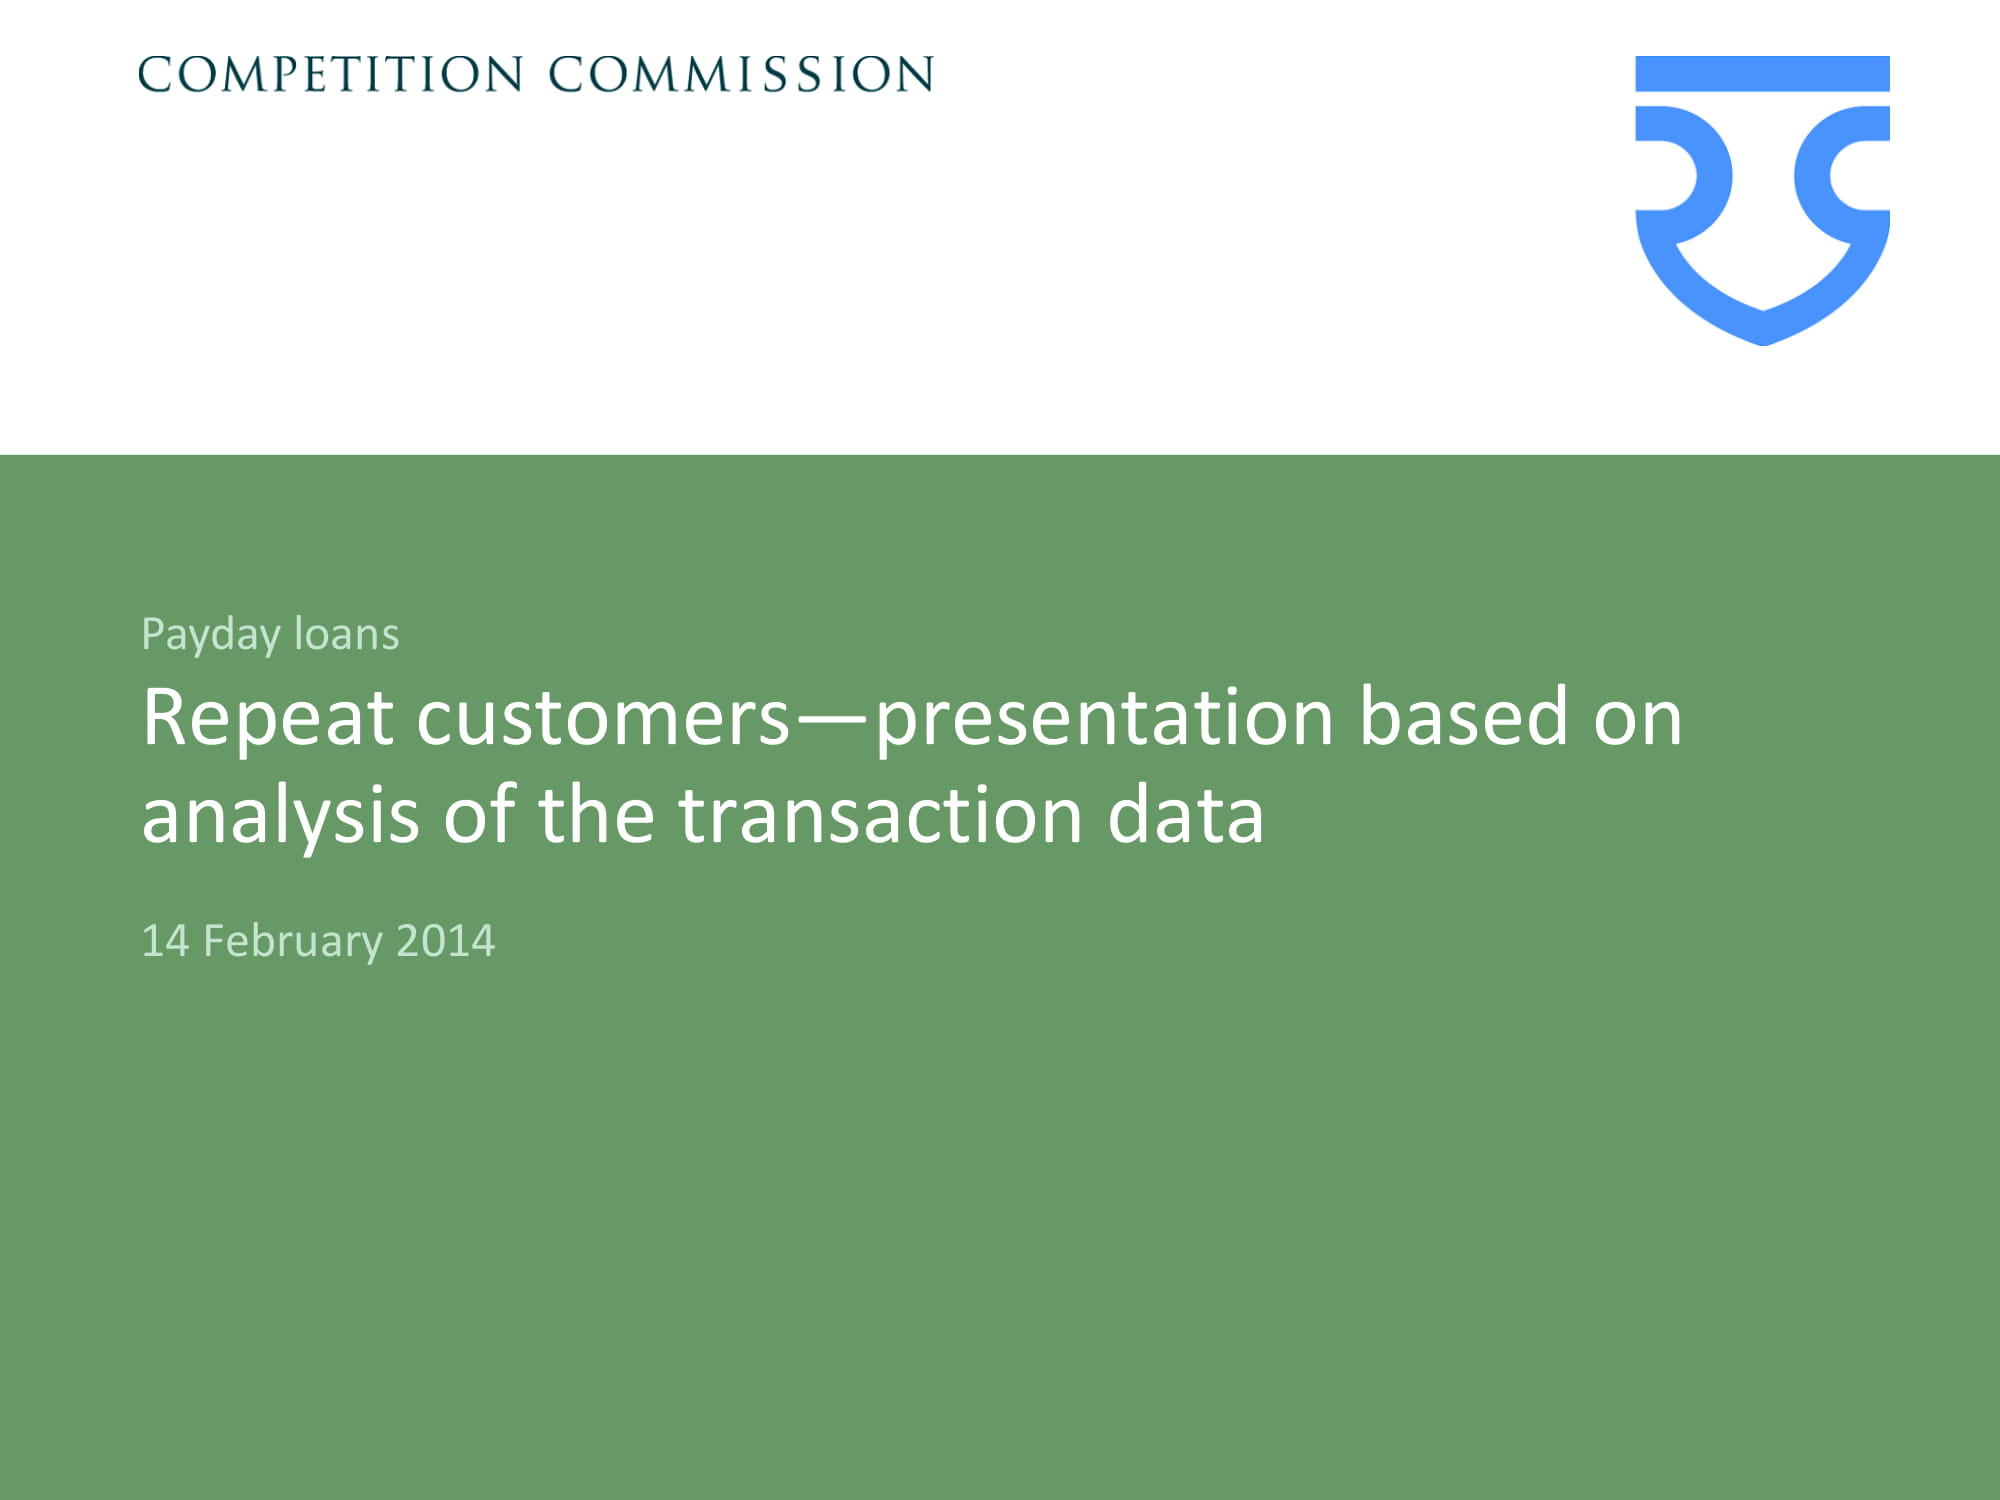 repeat customer presentation based on analysis of the transaction data